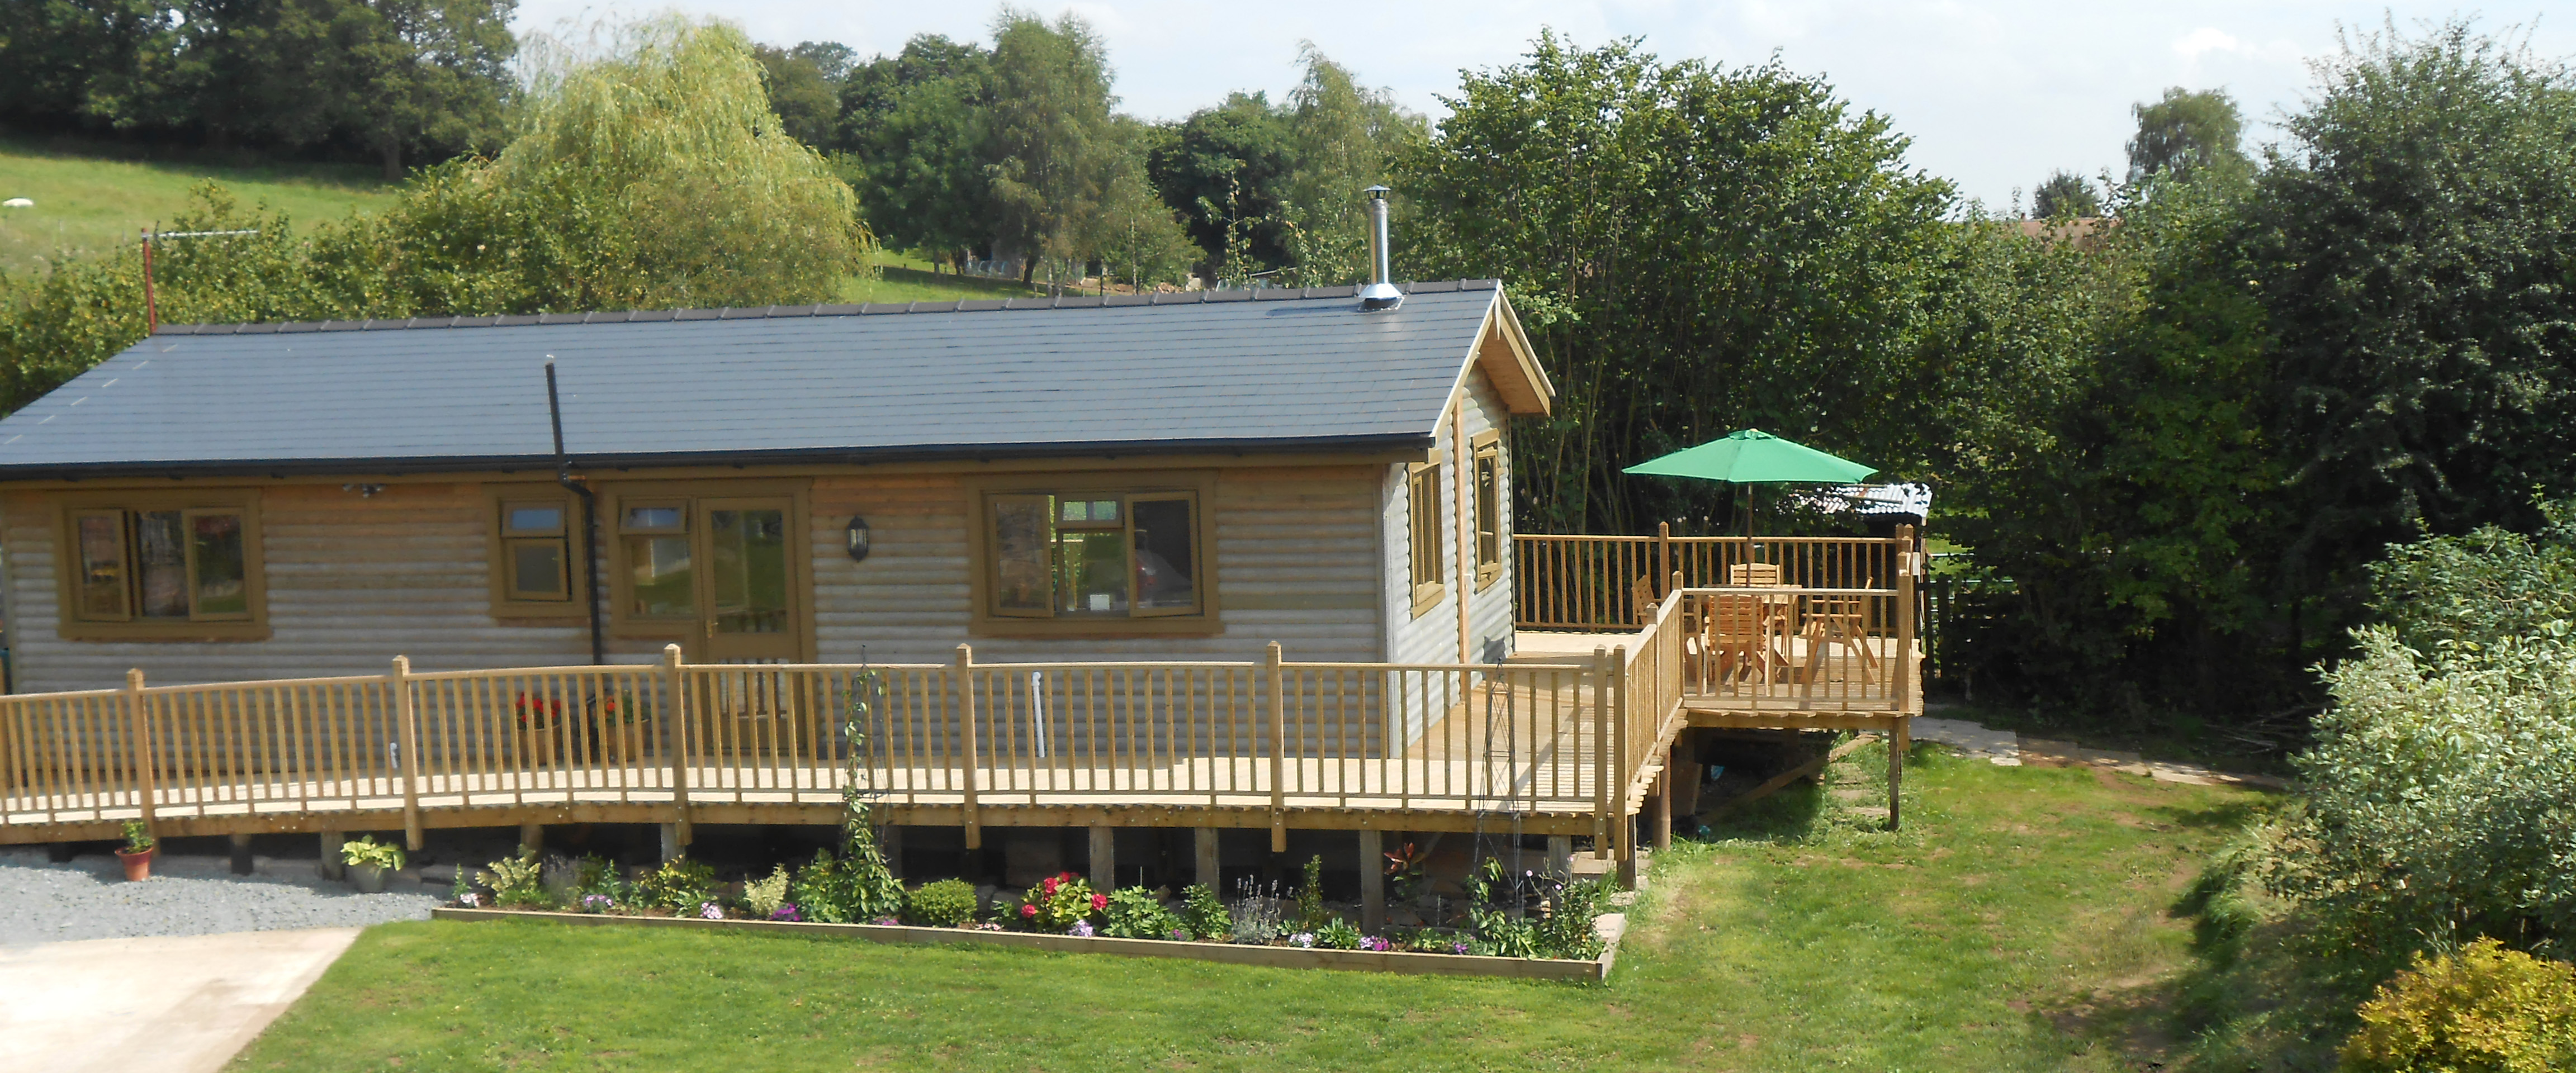 The Cabin Ludlow - Self Catering Accommodation